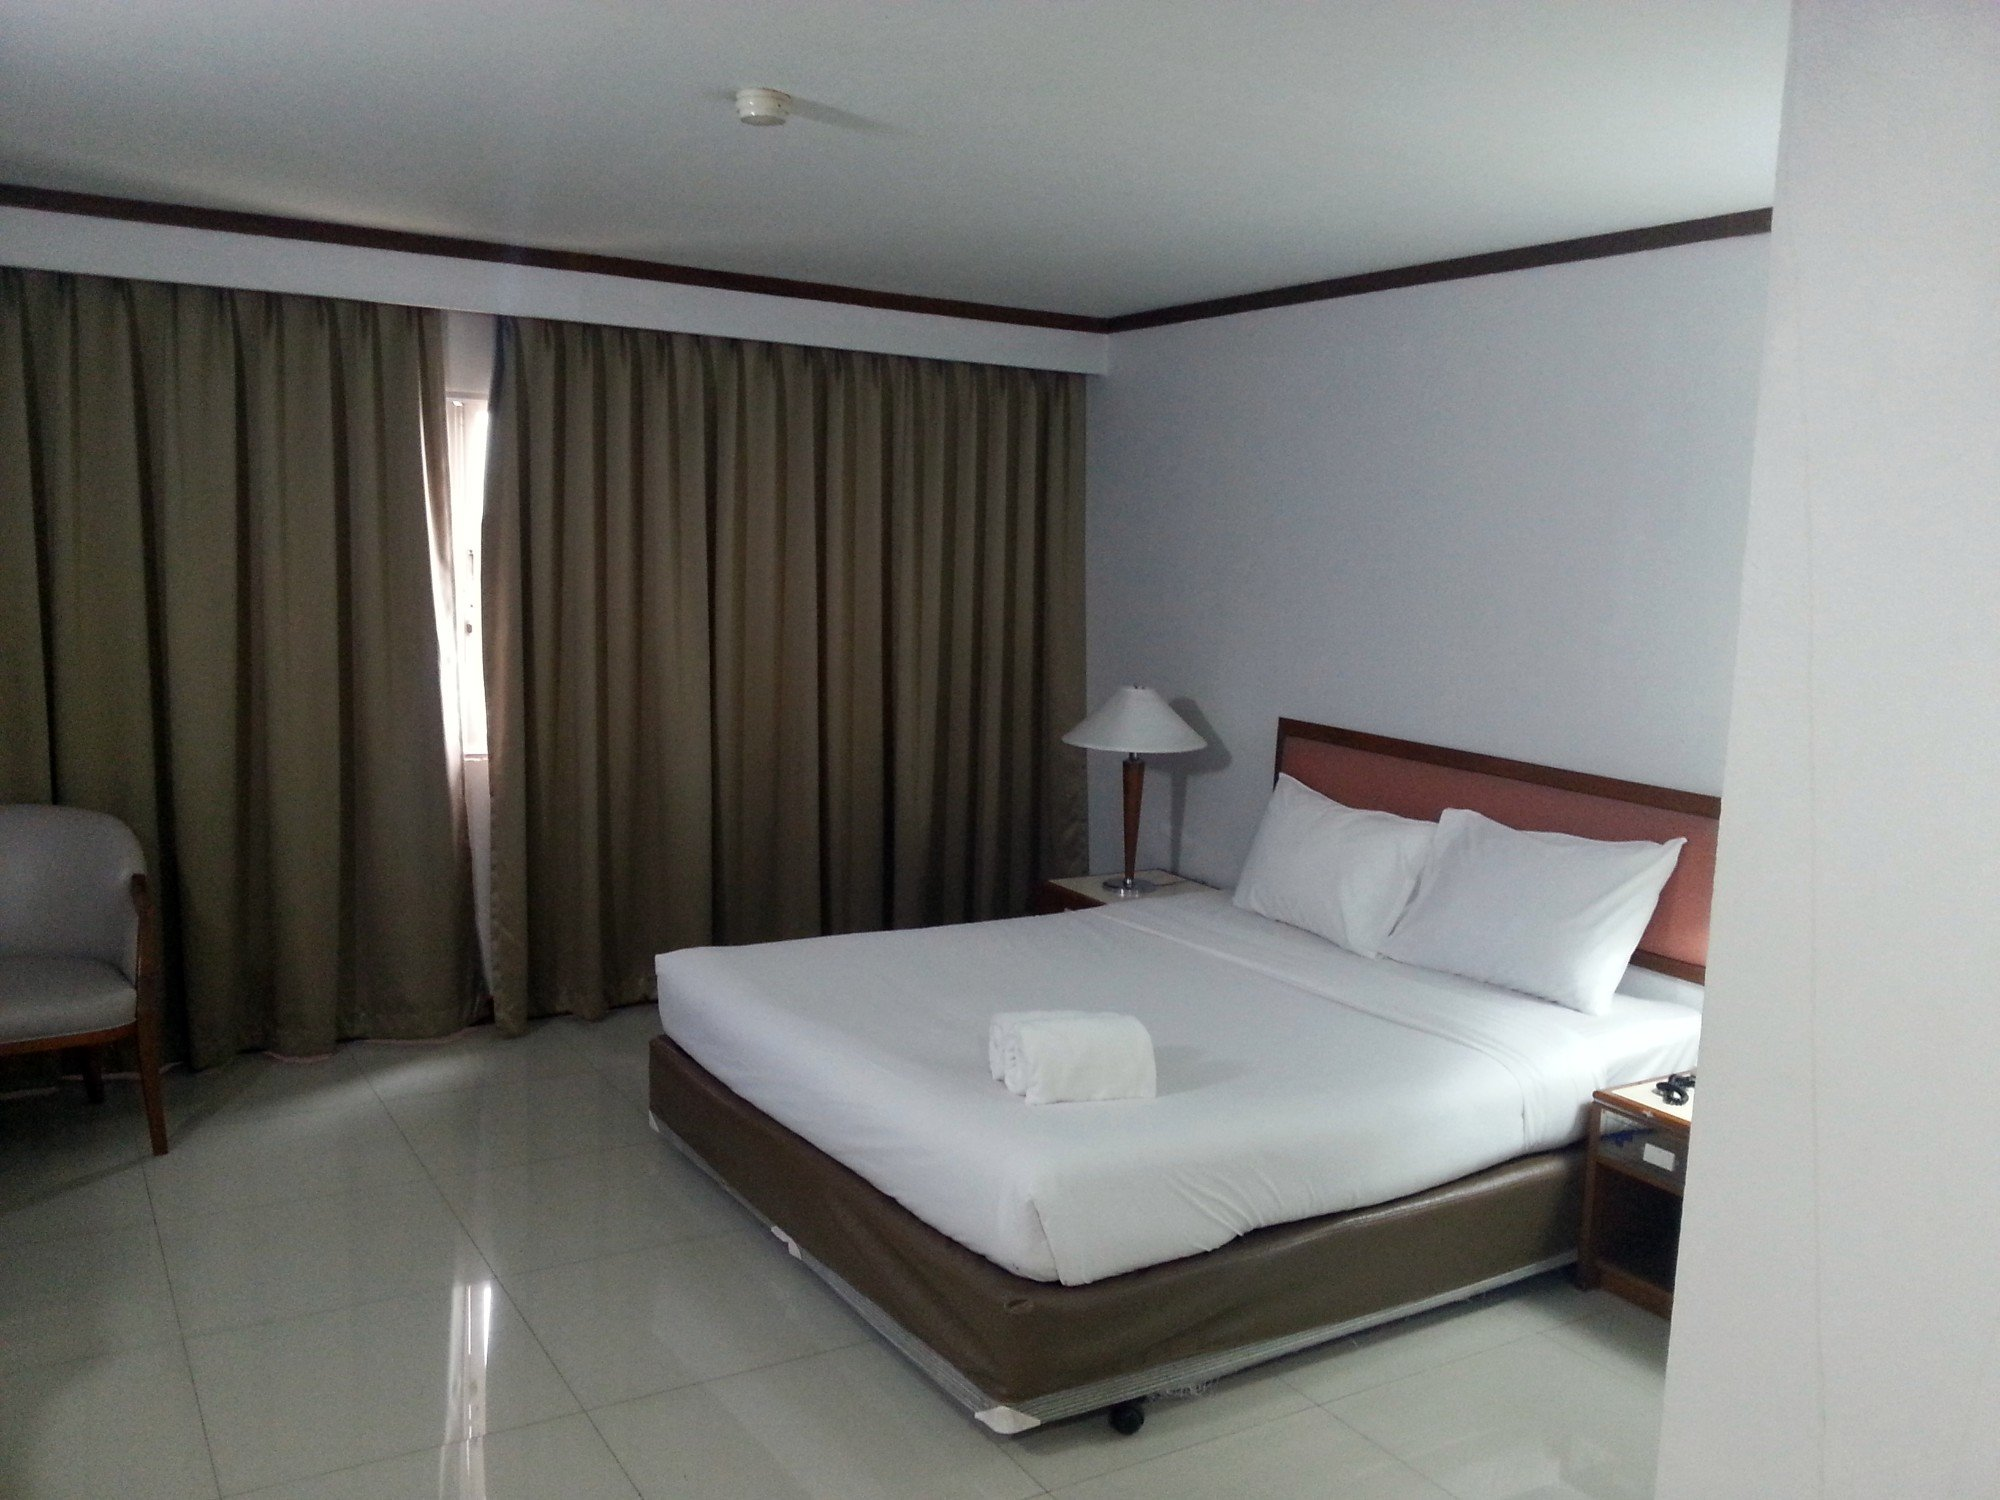 Bed at the Friday Hotel